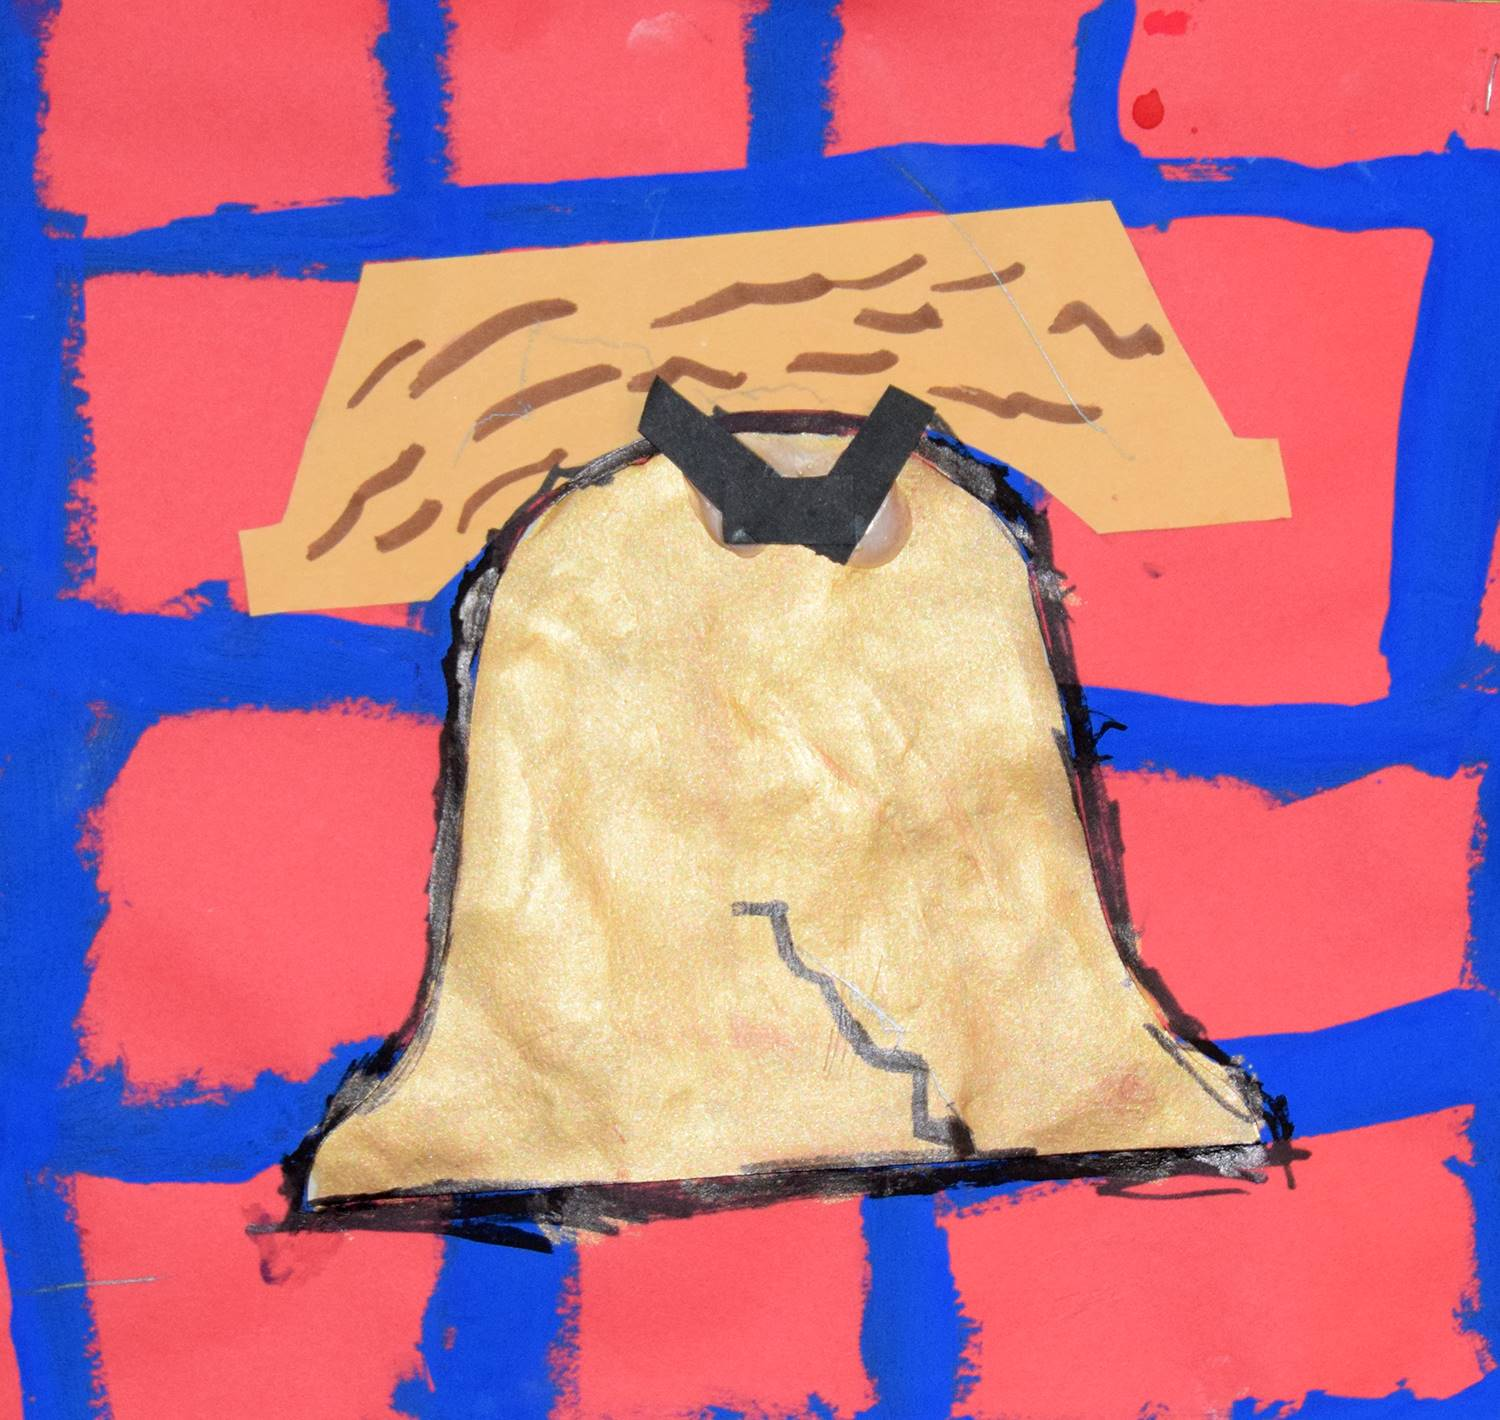 The Liberty Bell over red bricks by Tate, a Clayton Avenue Elementary student.